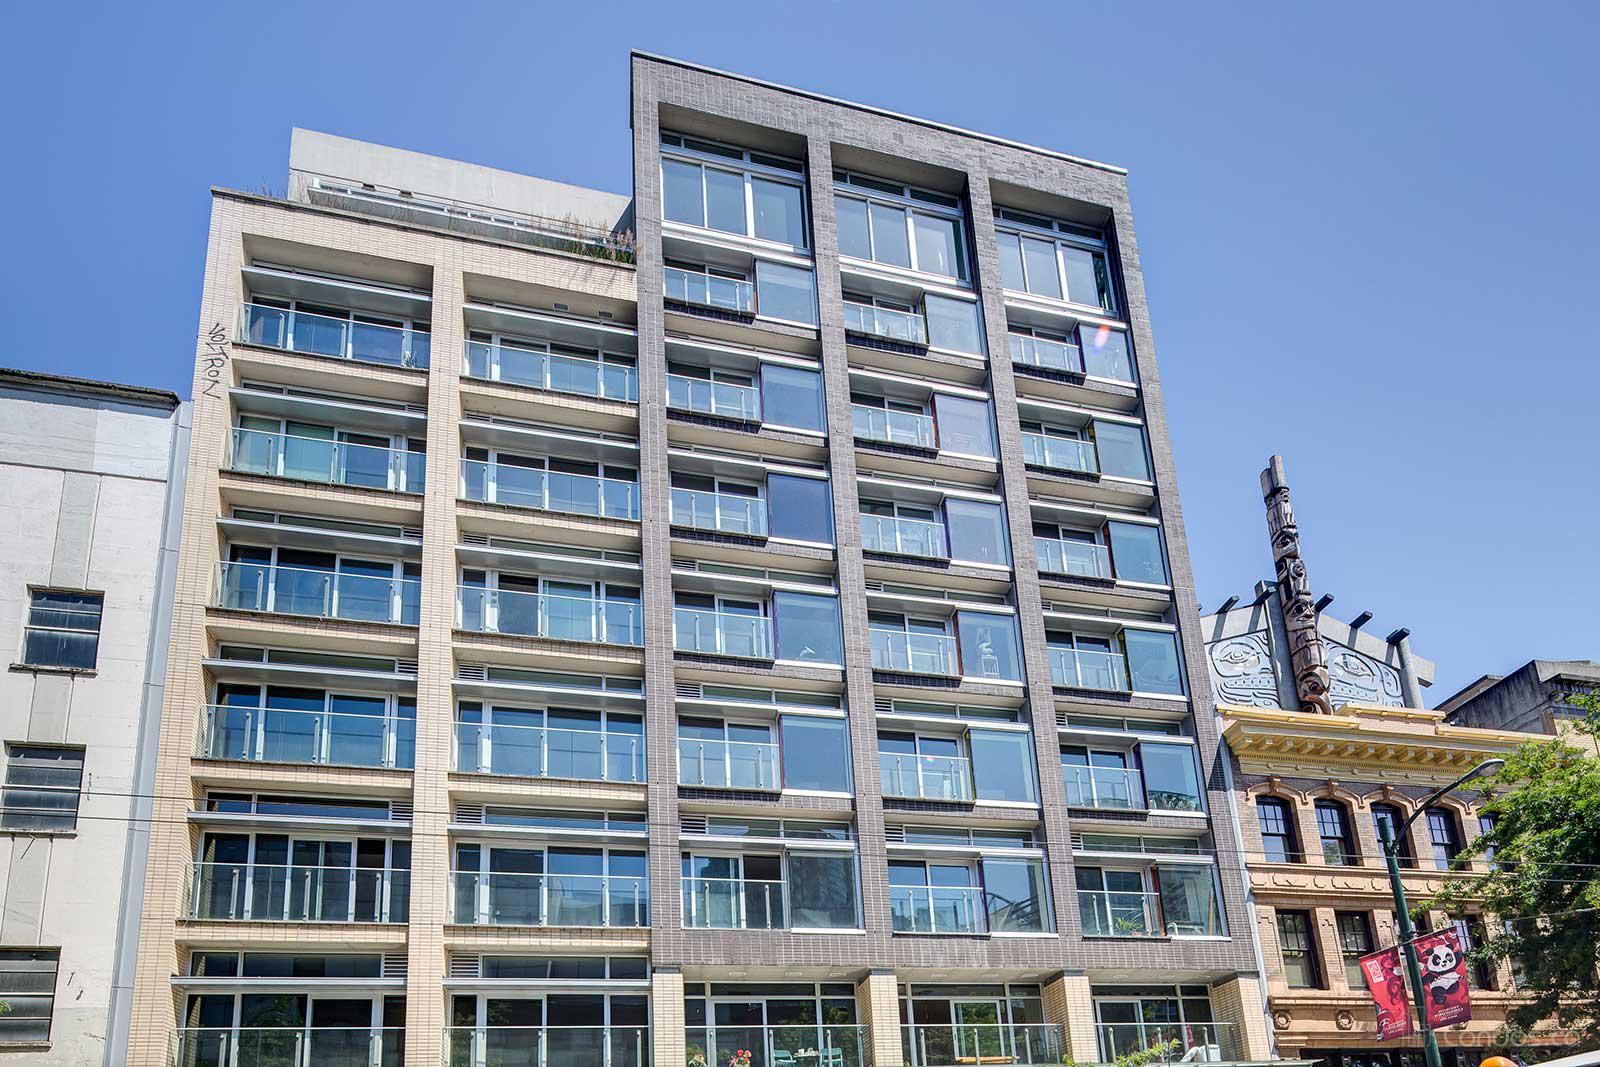 33 at 33 W Pender St, Vancouver 1